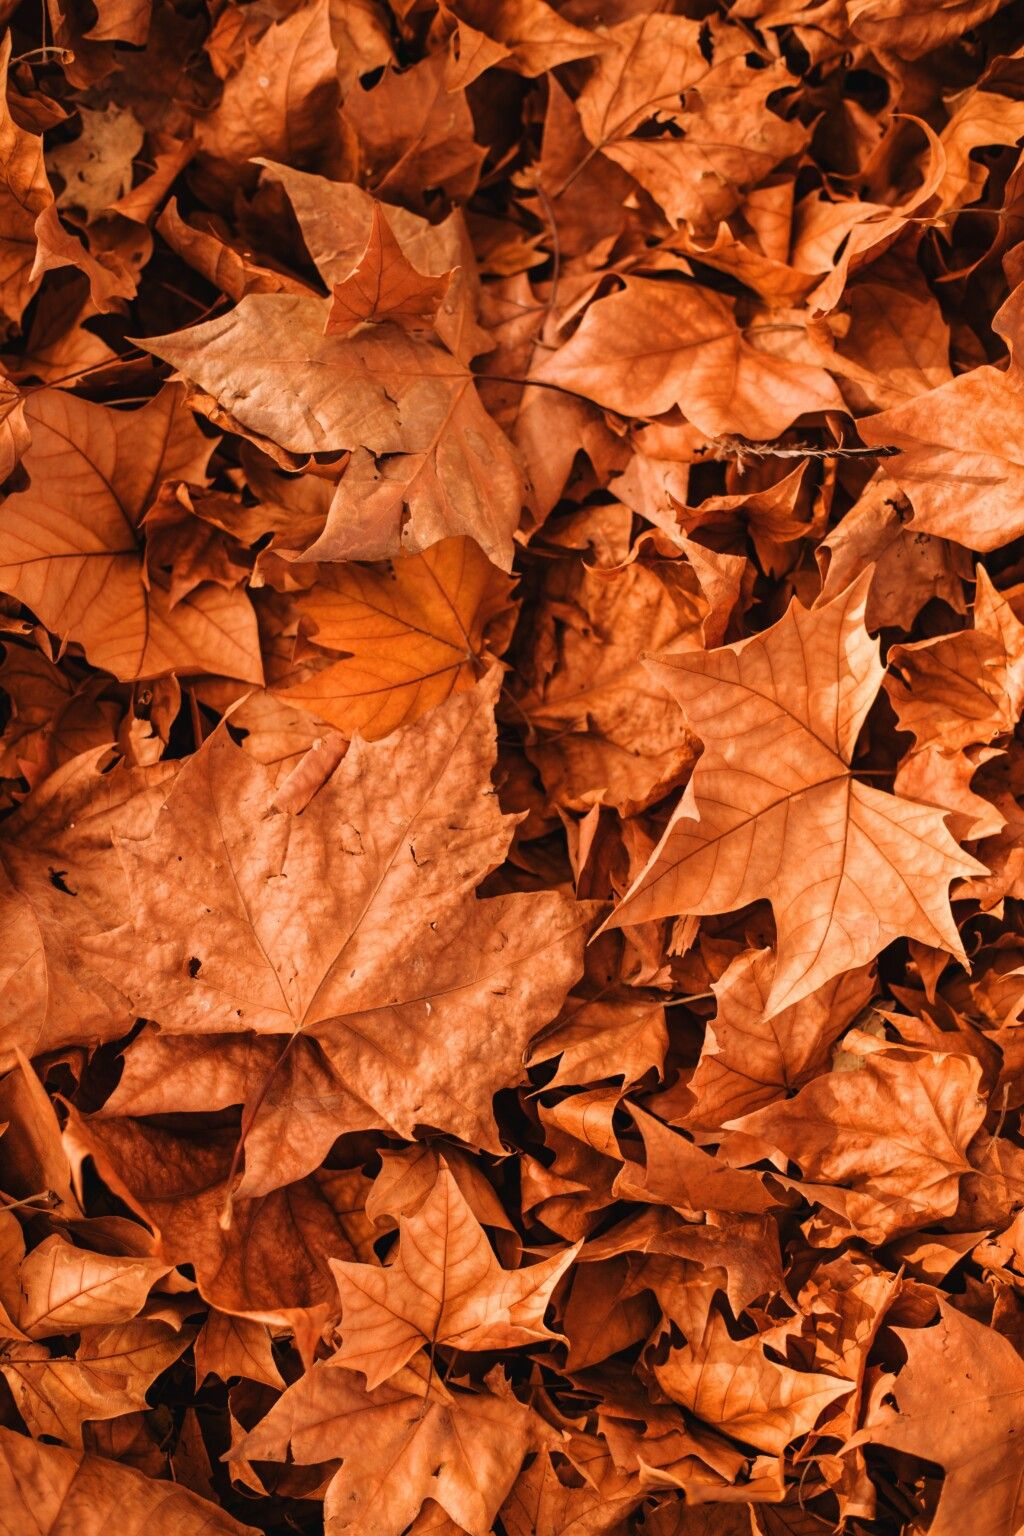 30+ Best Free Fall Wallpaper & Autumn Wallpaper Options For Your iPhone |